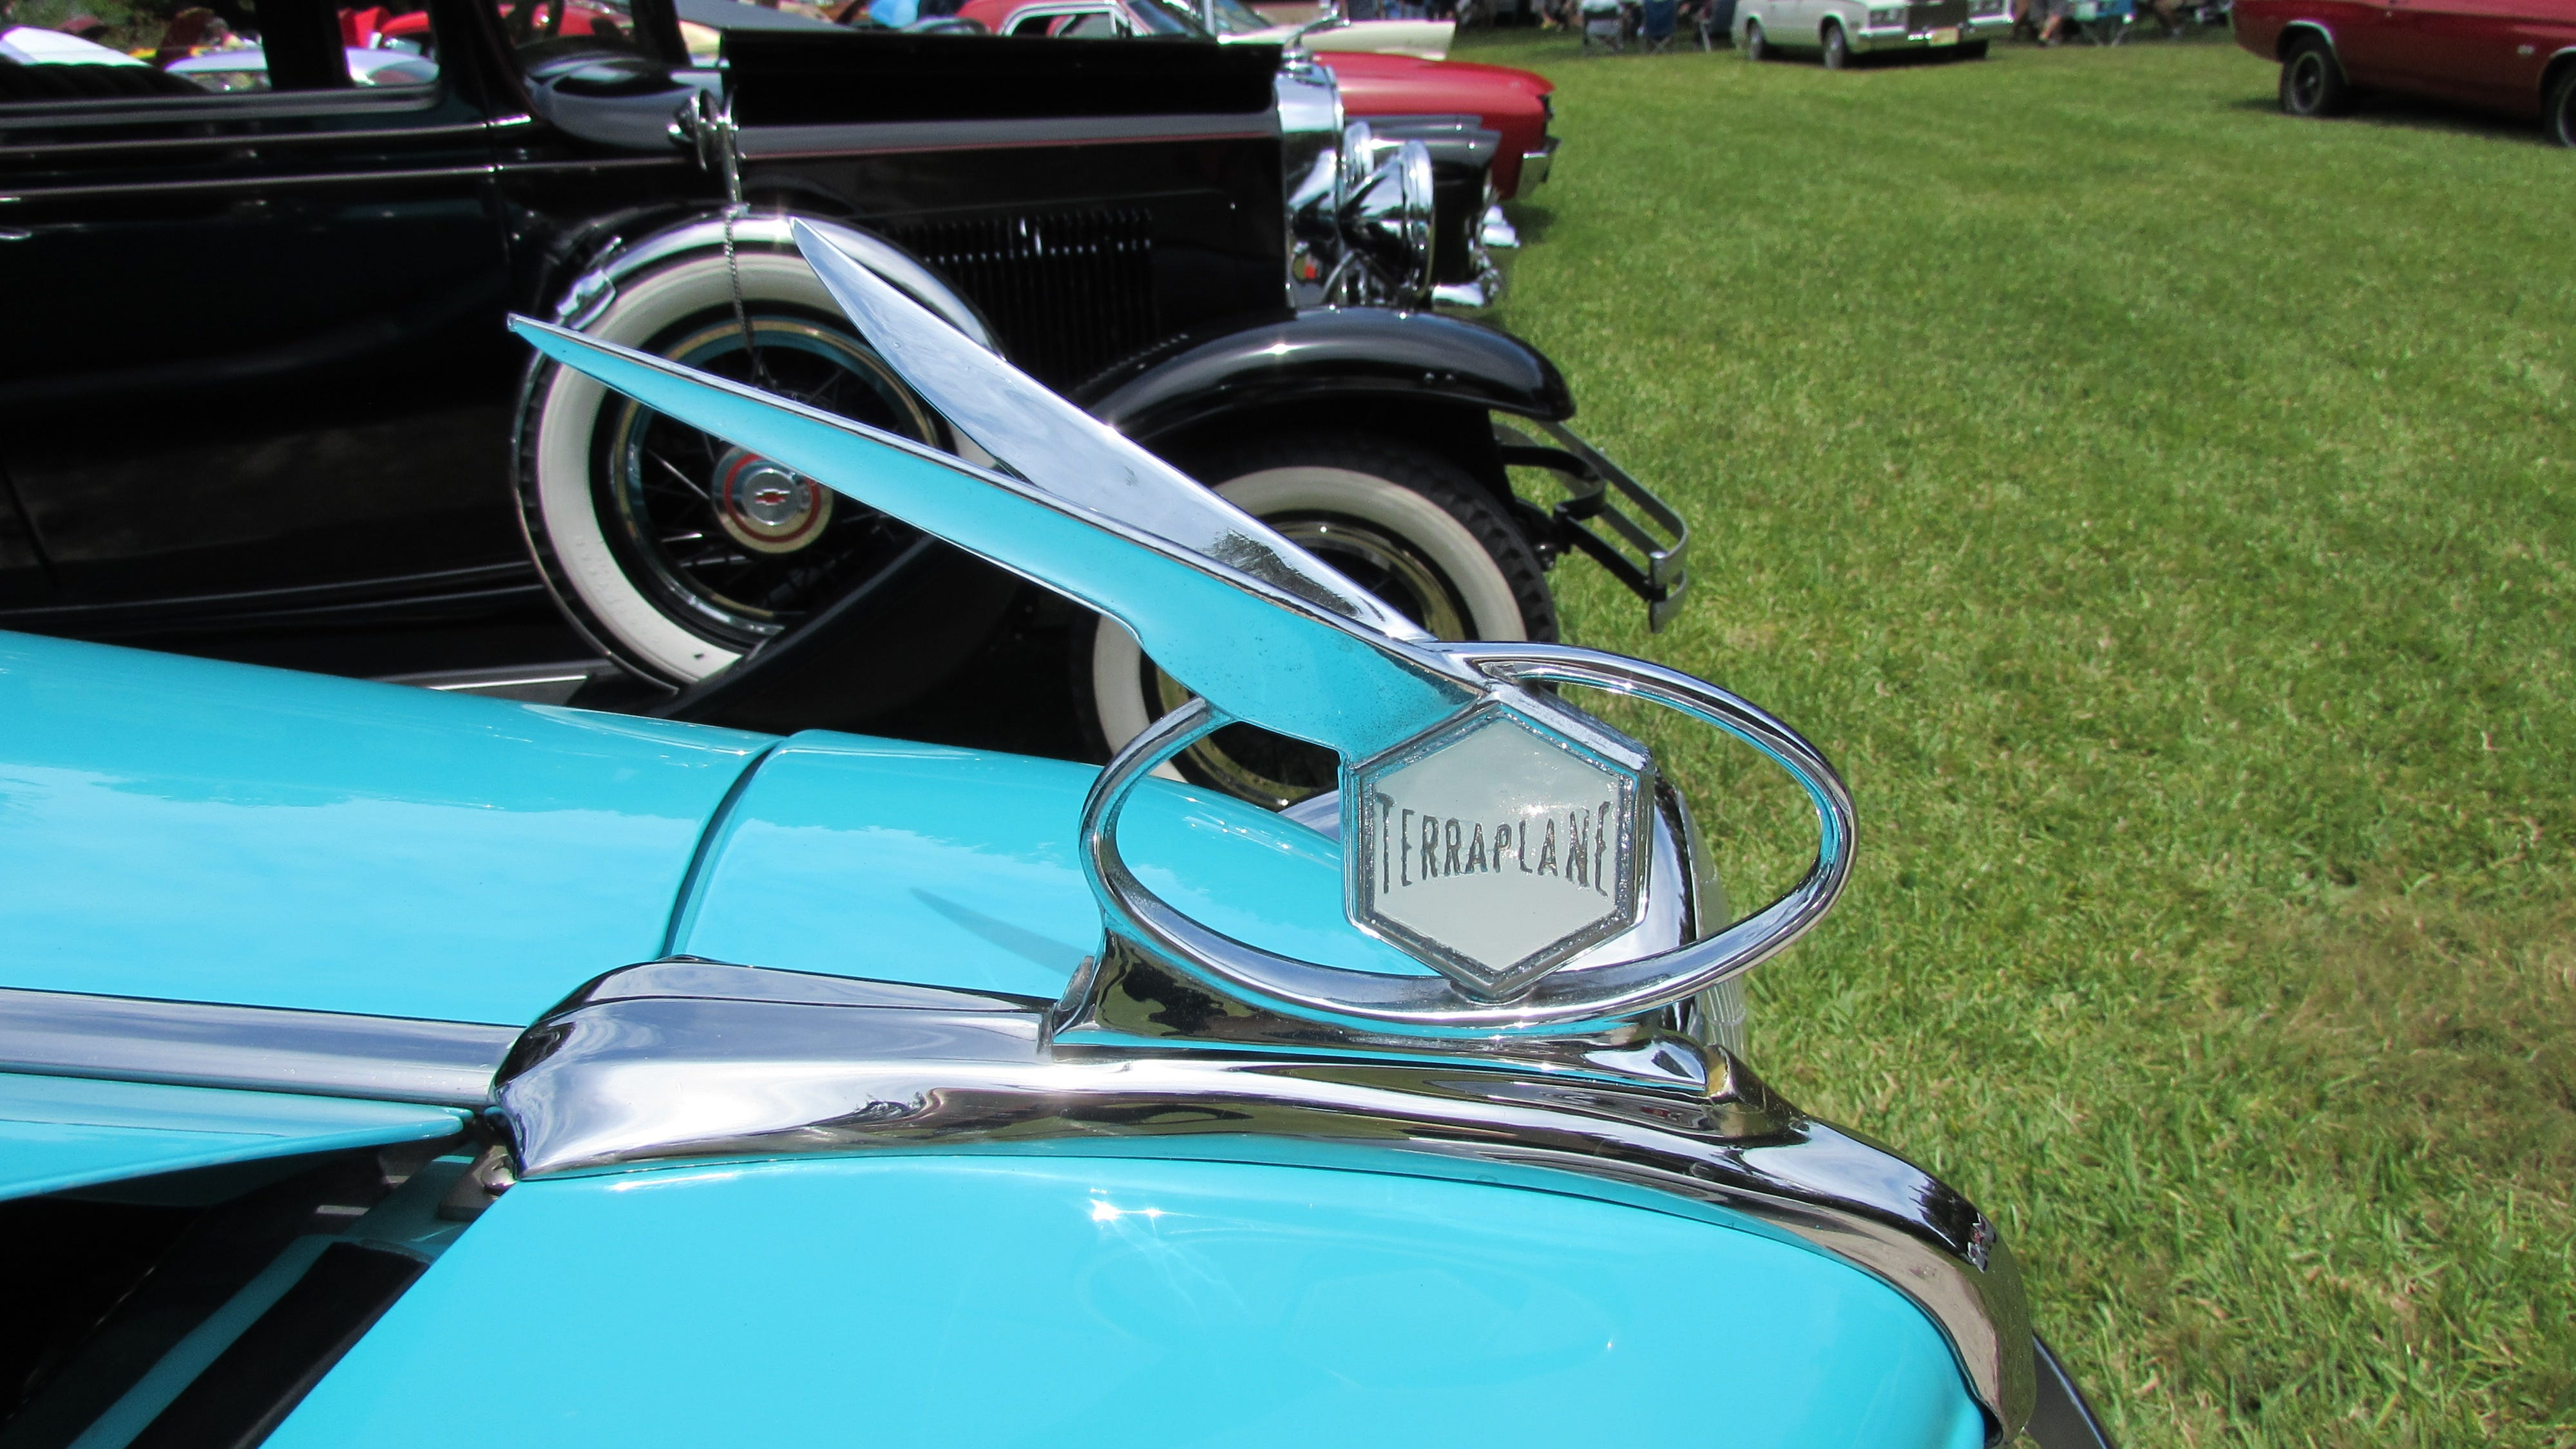 A Terraplane Car and Hood Ornament date back to the 1930s. The maker was Hudson Motor Car Company of Detroit, according to Wikipedia.